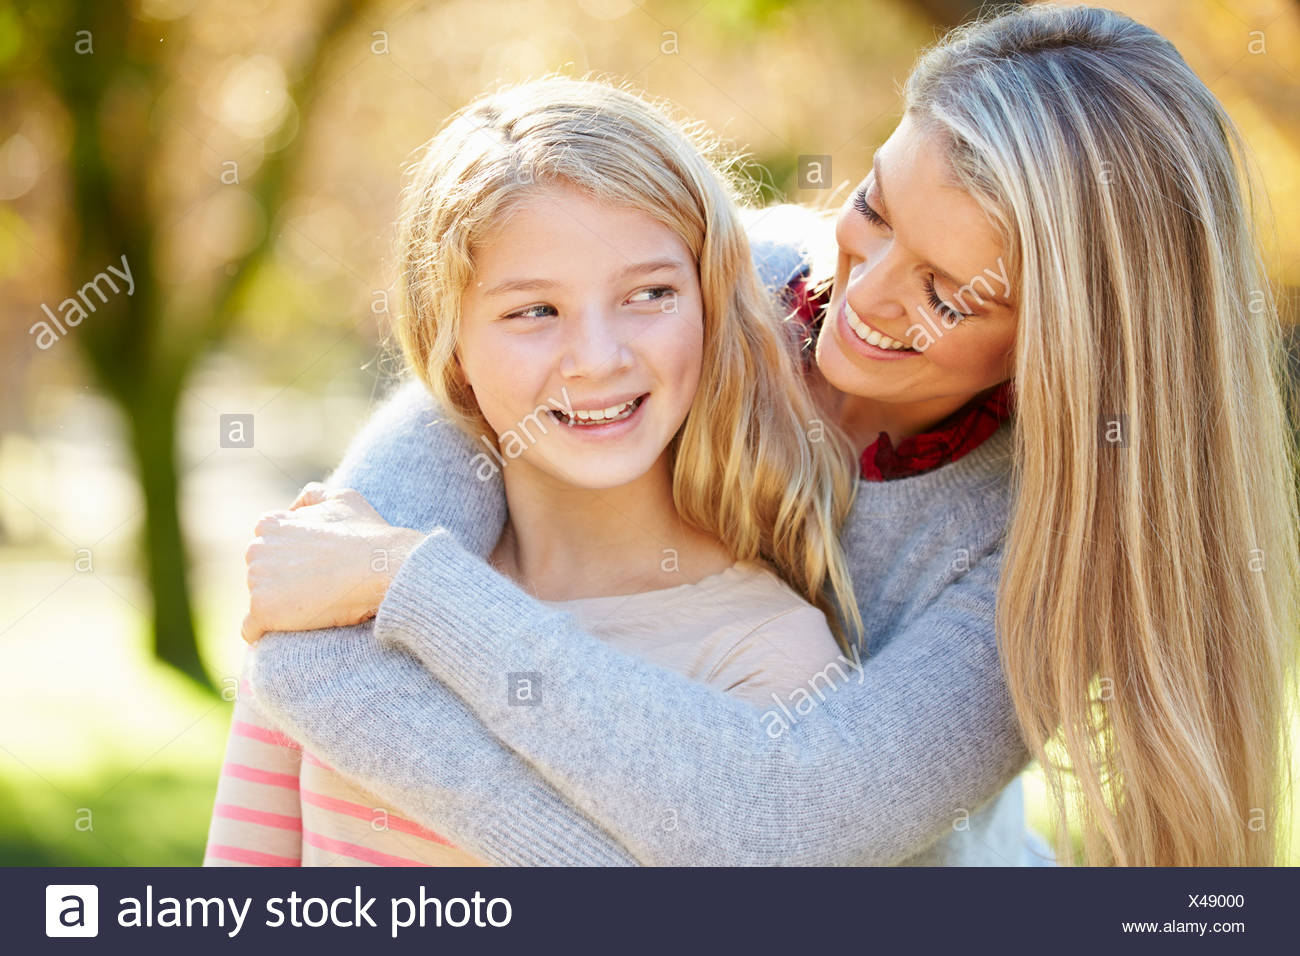 Mother And Daughter In Countryside - Stock Image